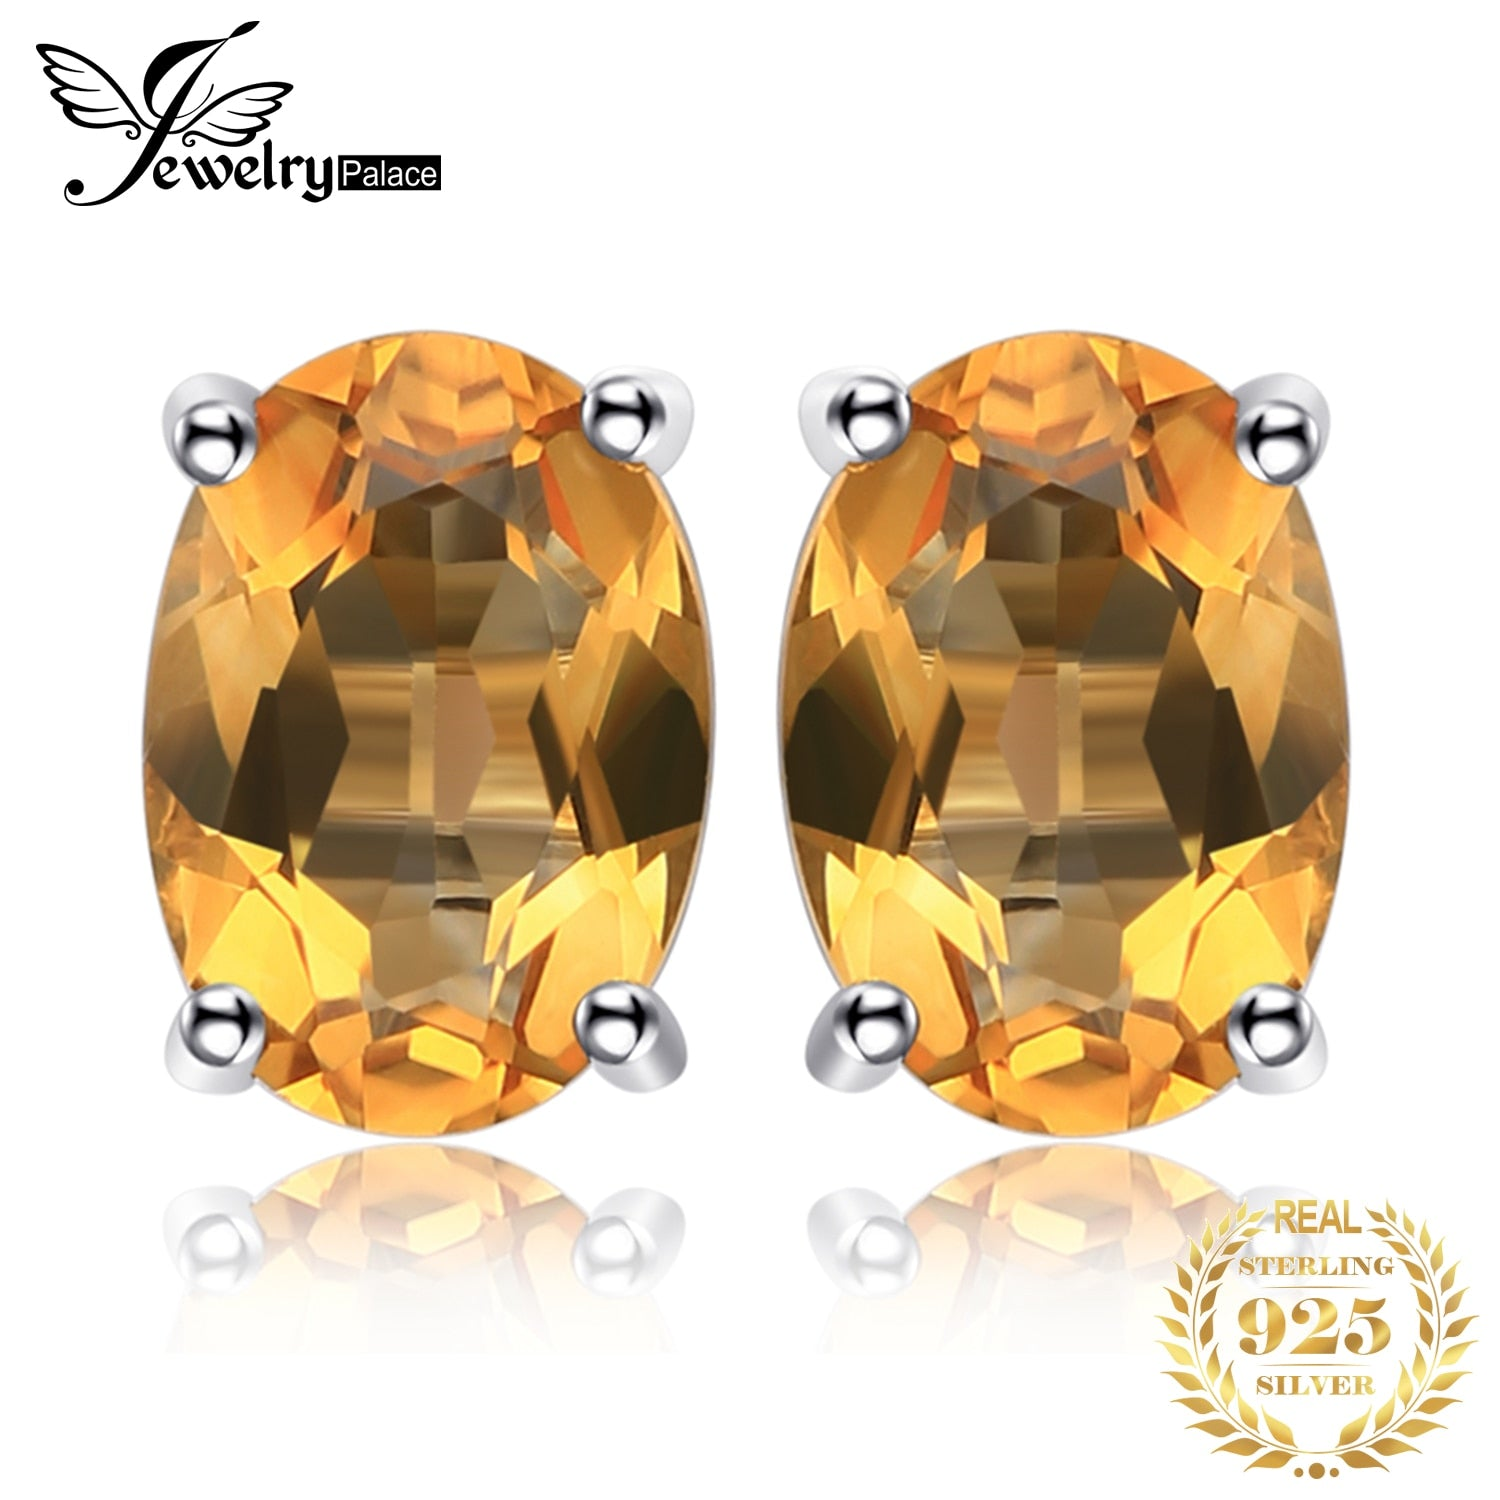 JewelryPalace 1.4ct Genuine Citrine Stud Earrings 925 Sterling Silver Earrings for Women Korean Earings Fashion Jewelry 2020 - My Accessory